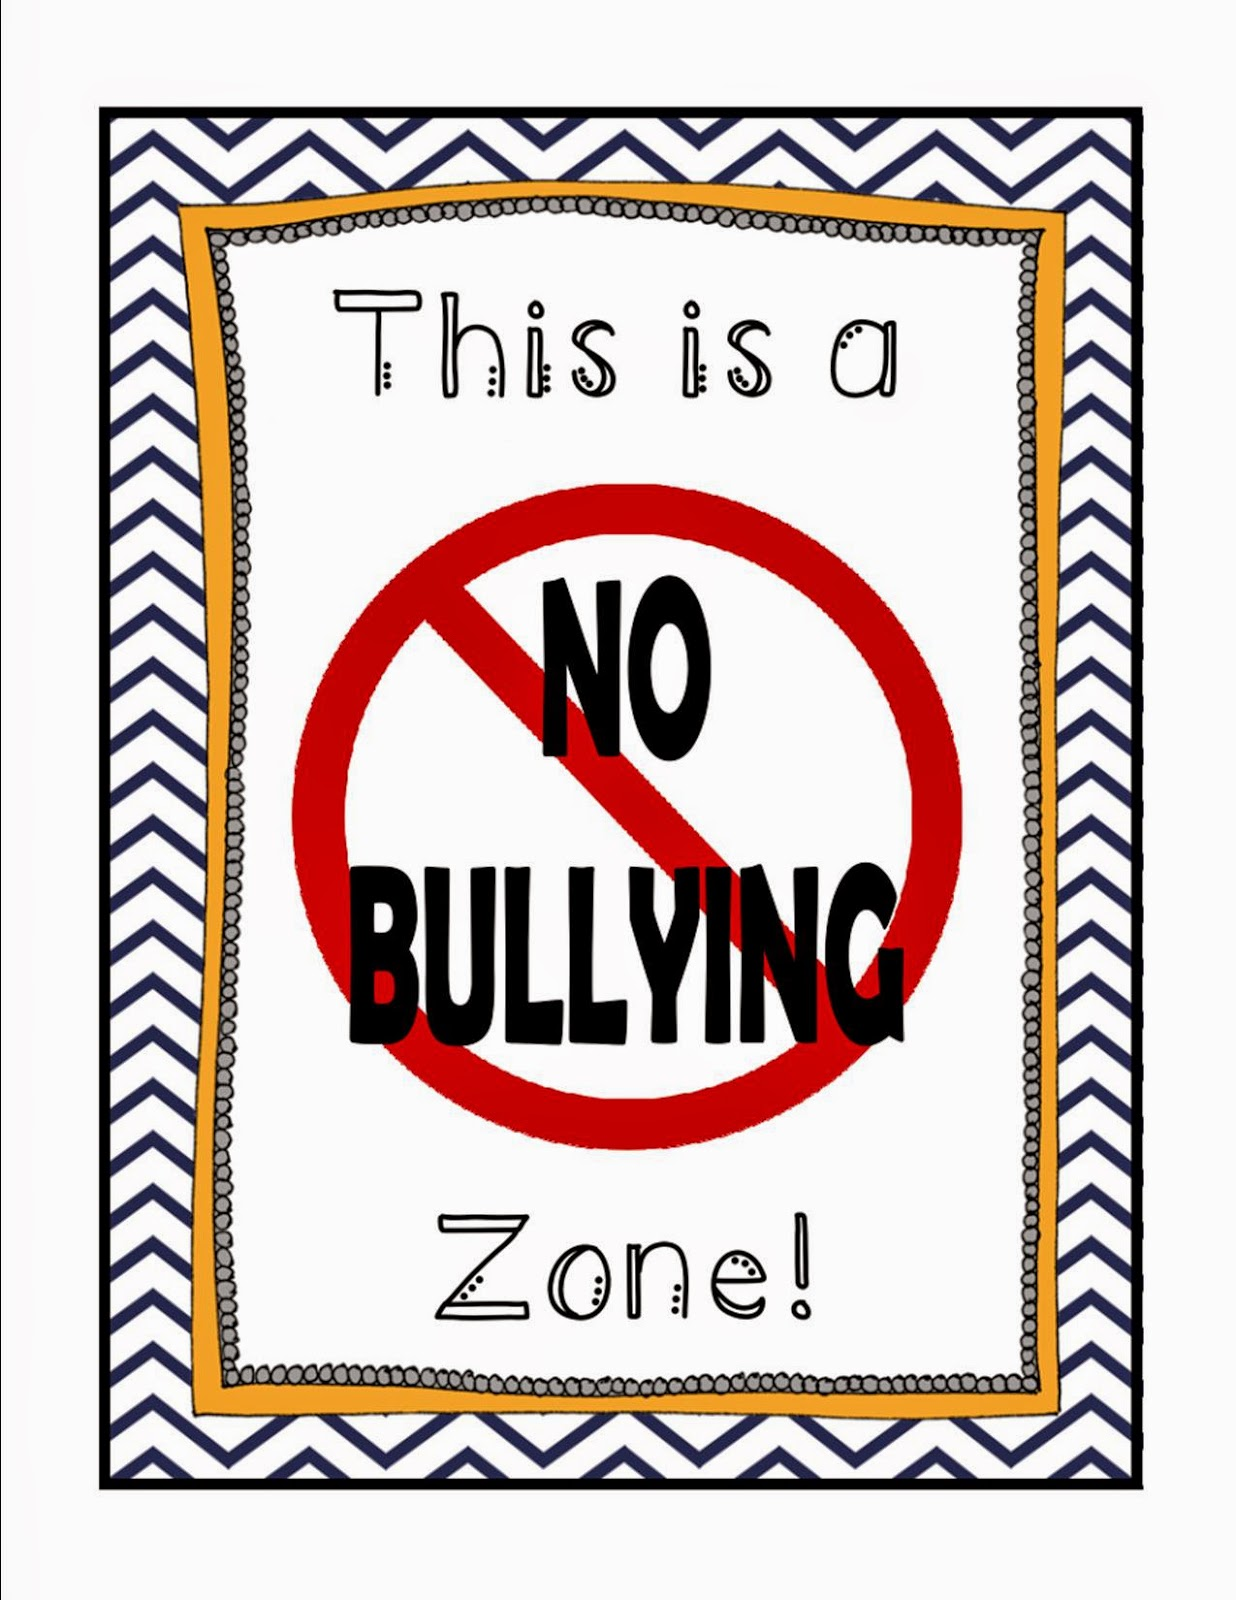 https://www.teacherspayteachers.com/Product/No-Bullying-Zone-Poster-FREEBIE-765267